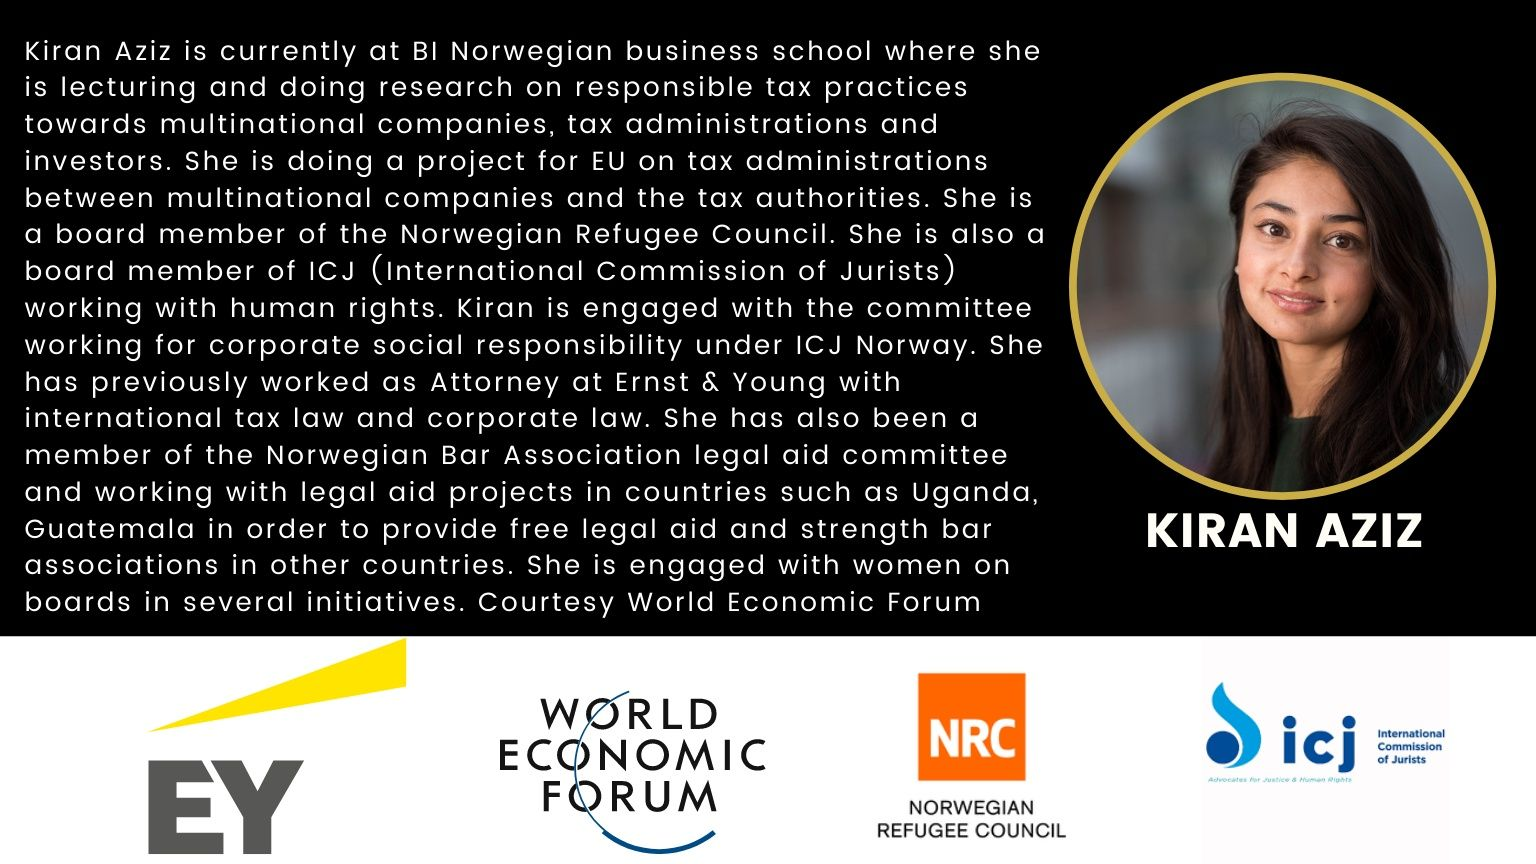 Kiran Aziz is currently at BI Norwegian business school where she is lecturing and doing research on responsible tax practices towards multinational companies, tax administrations and investors. She is doing a project for EU on tax administrations between multinational companies and the tax authorities. She is a board member of the Norwegian Refugee Council. She is also a board member of ICJ (International Commission of Jurists) working with human rights. Kiran is engaged with the committee working for corporate social responsibility under ICJ Norway. She has previously worked as Attorney at Ernst & Young with international tax law and corporate law. She has also been a member of the Norwegian Bar Association legal aid committee and working with legal aid projects in countries such as Uganda, Guatemala in order to provide free legal aid and strength bar associations in other countries. She is engaged with women on boards in several initiatives. Courtesy World Economic Forum